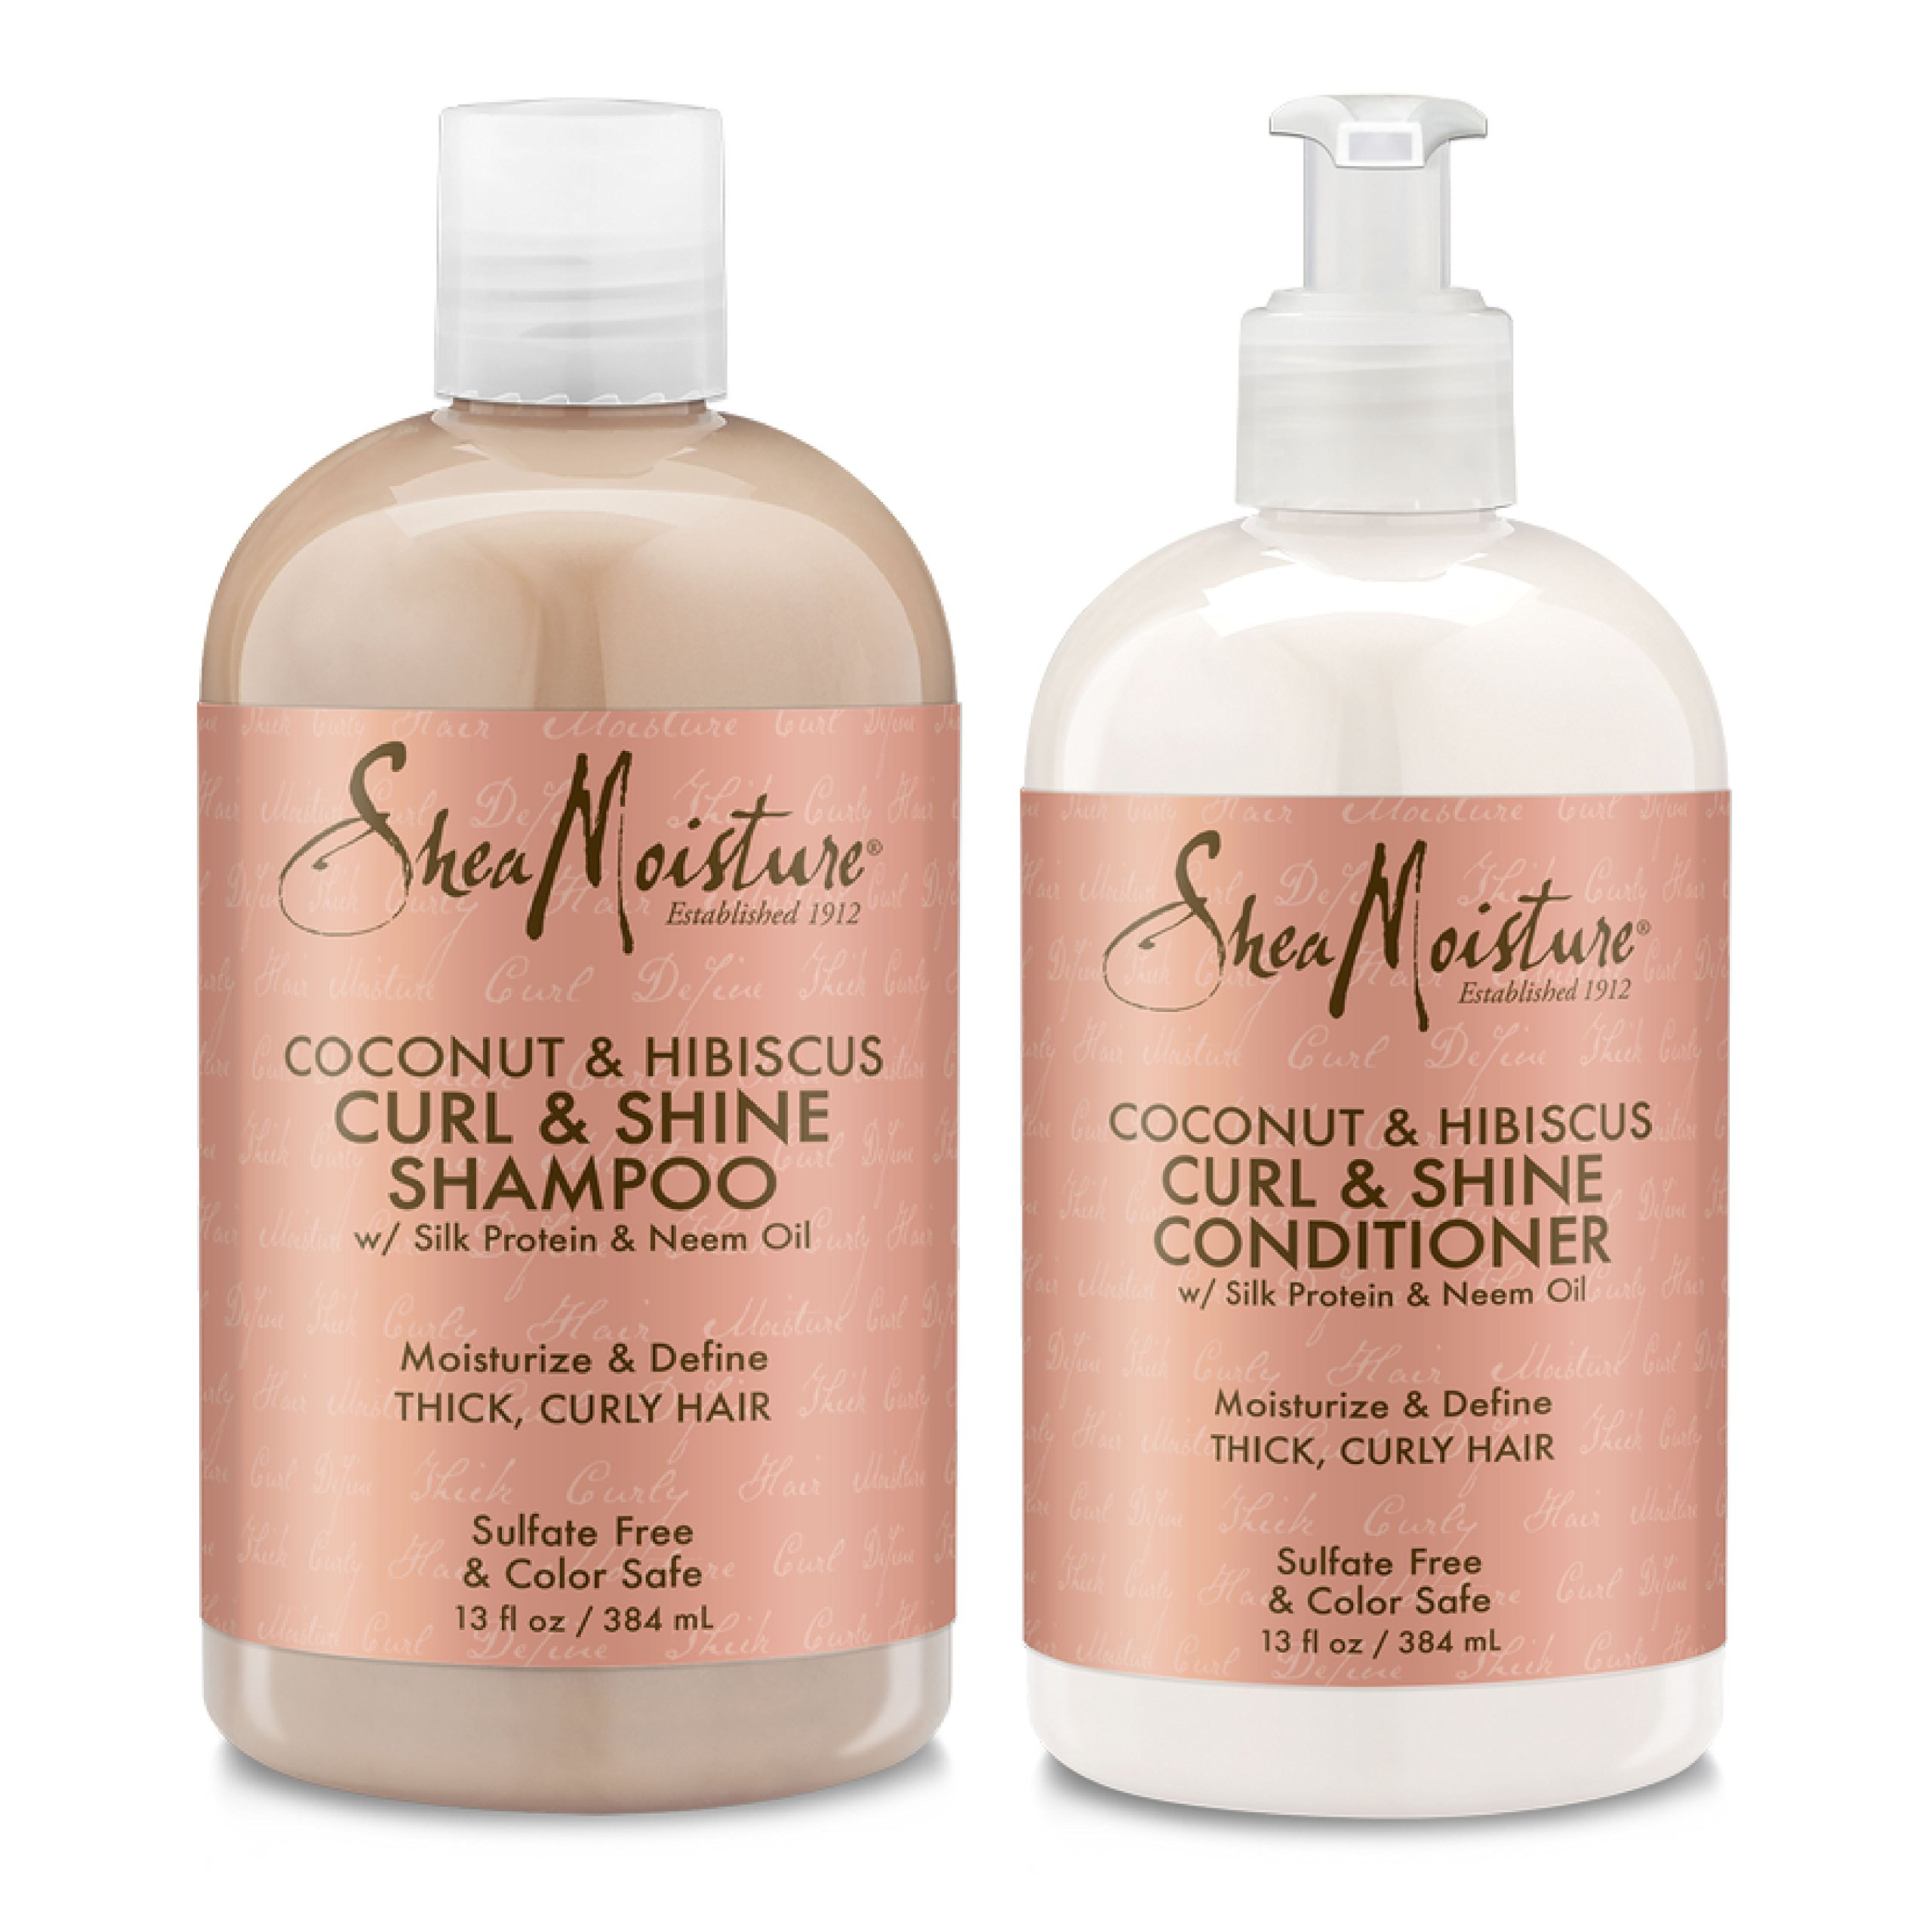 Shea Moisture Coconut & Hibiscus Curl & Shine, Shampoo and Conditioner Set, Silk Protein and Neem Oil, 13 Oz Each